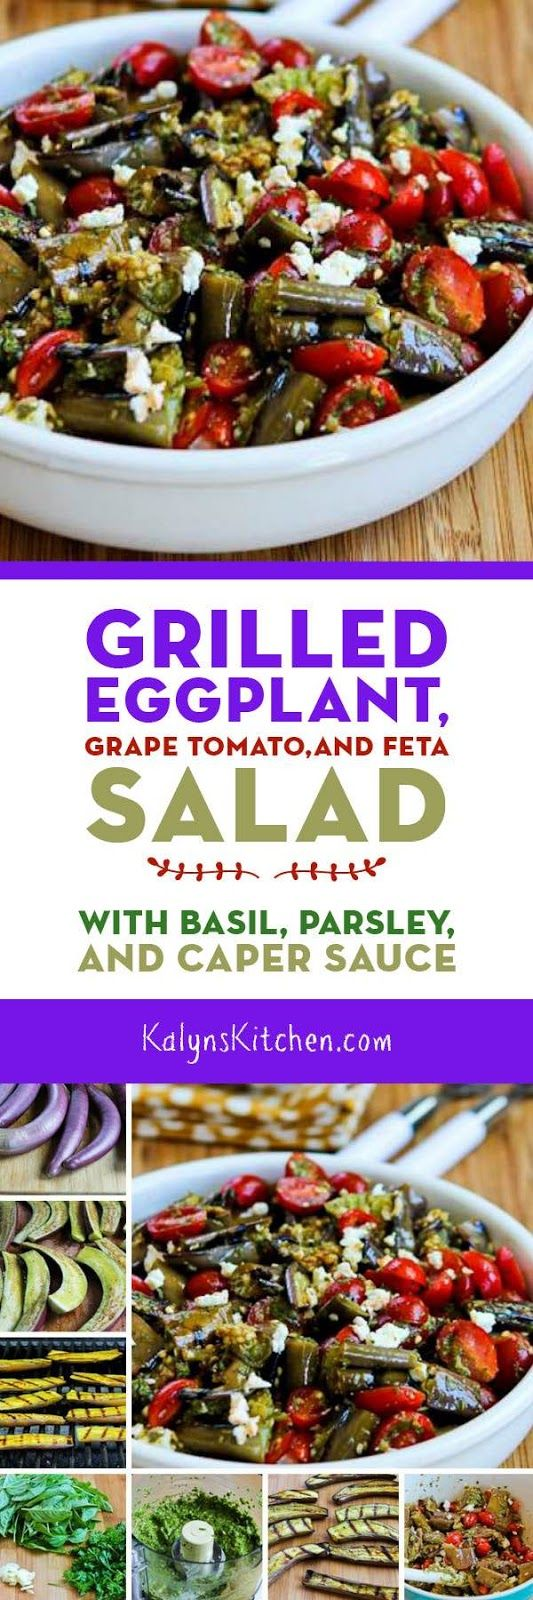 feta salad pasta salad with grilled eggplant and feta recipes dishmaps ...